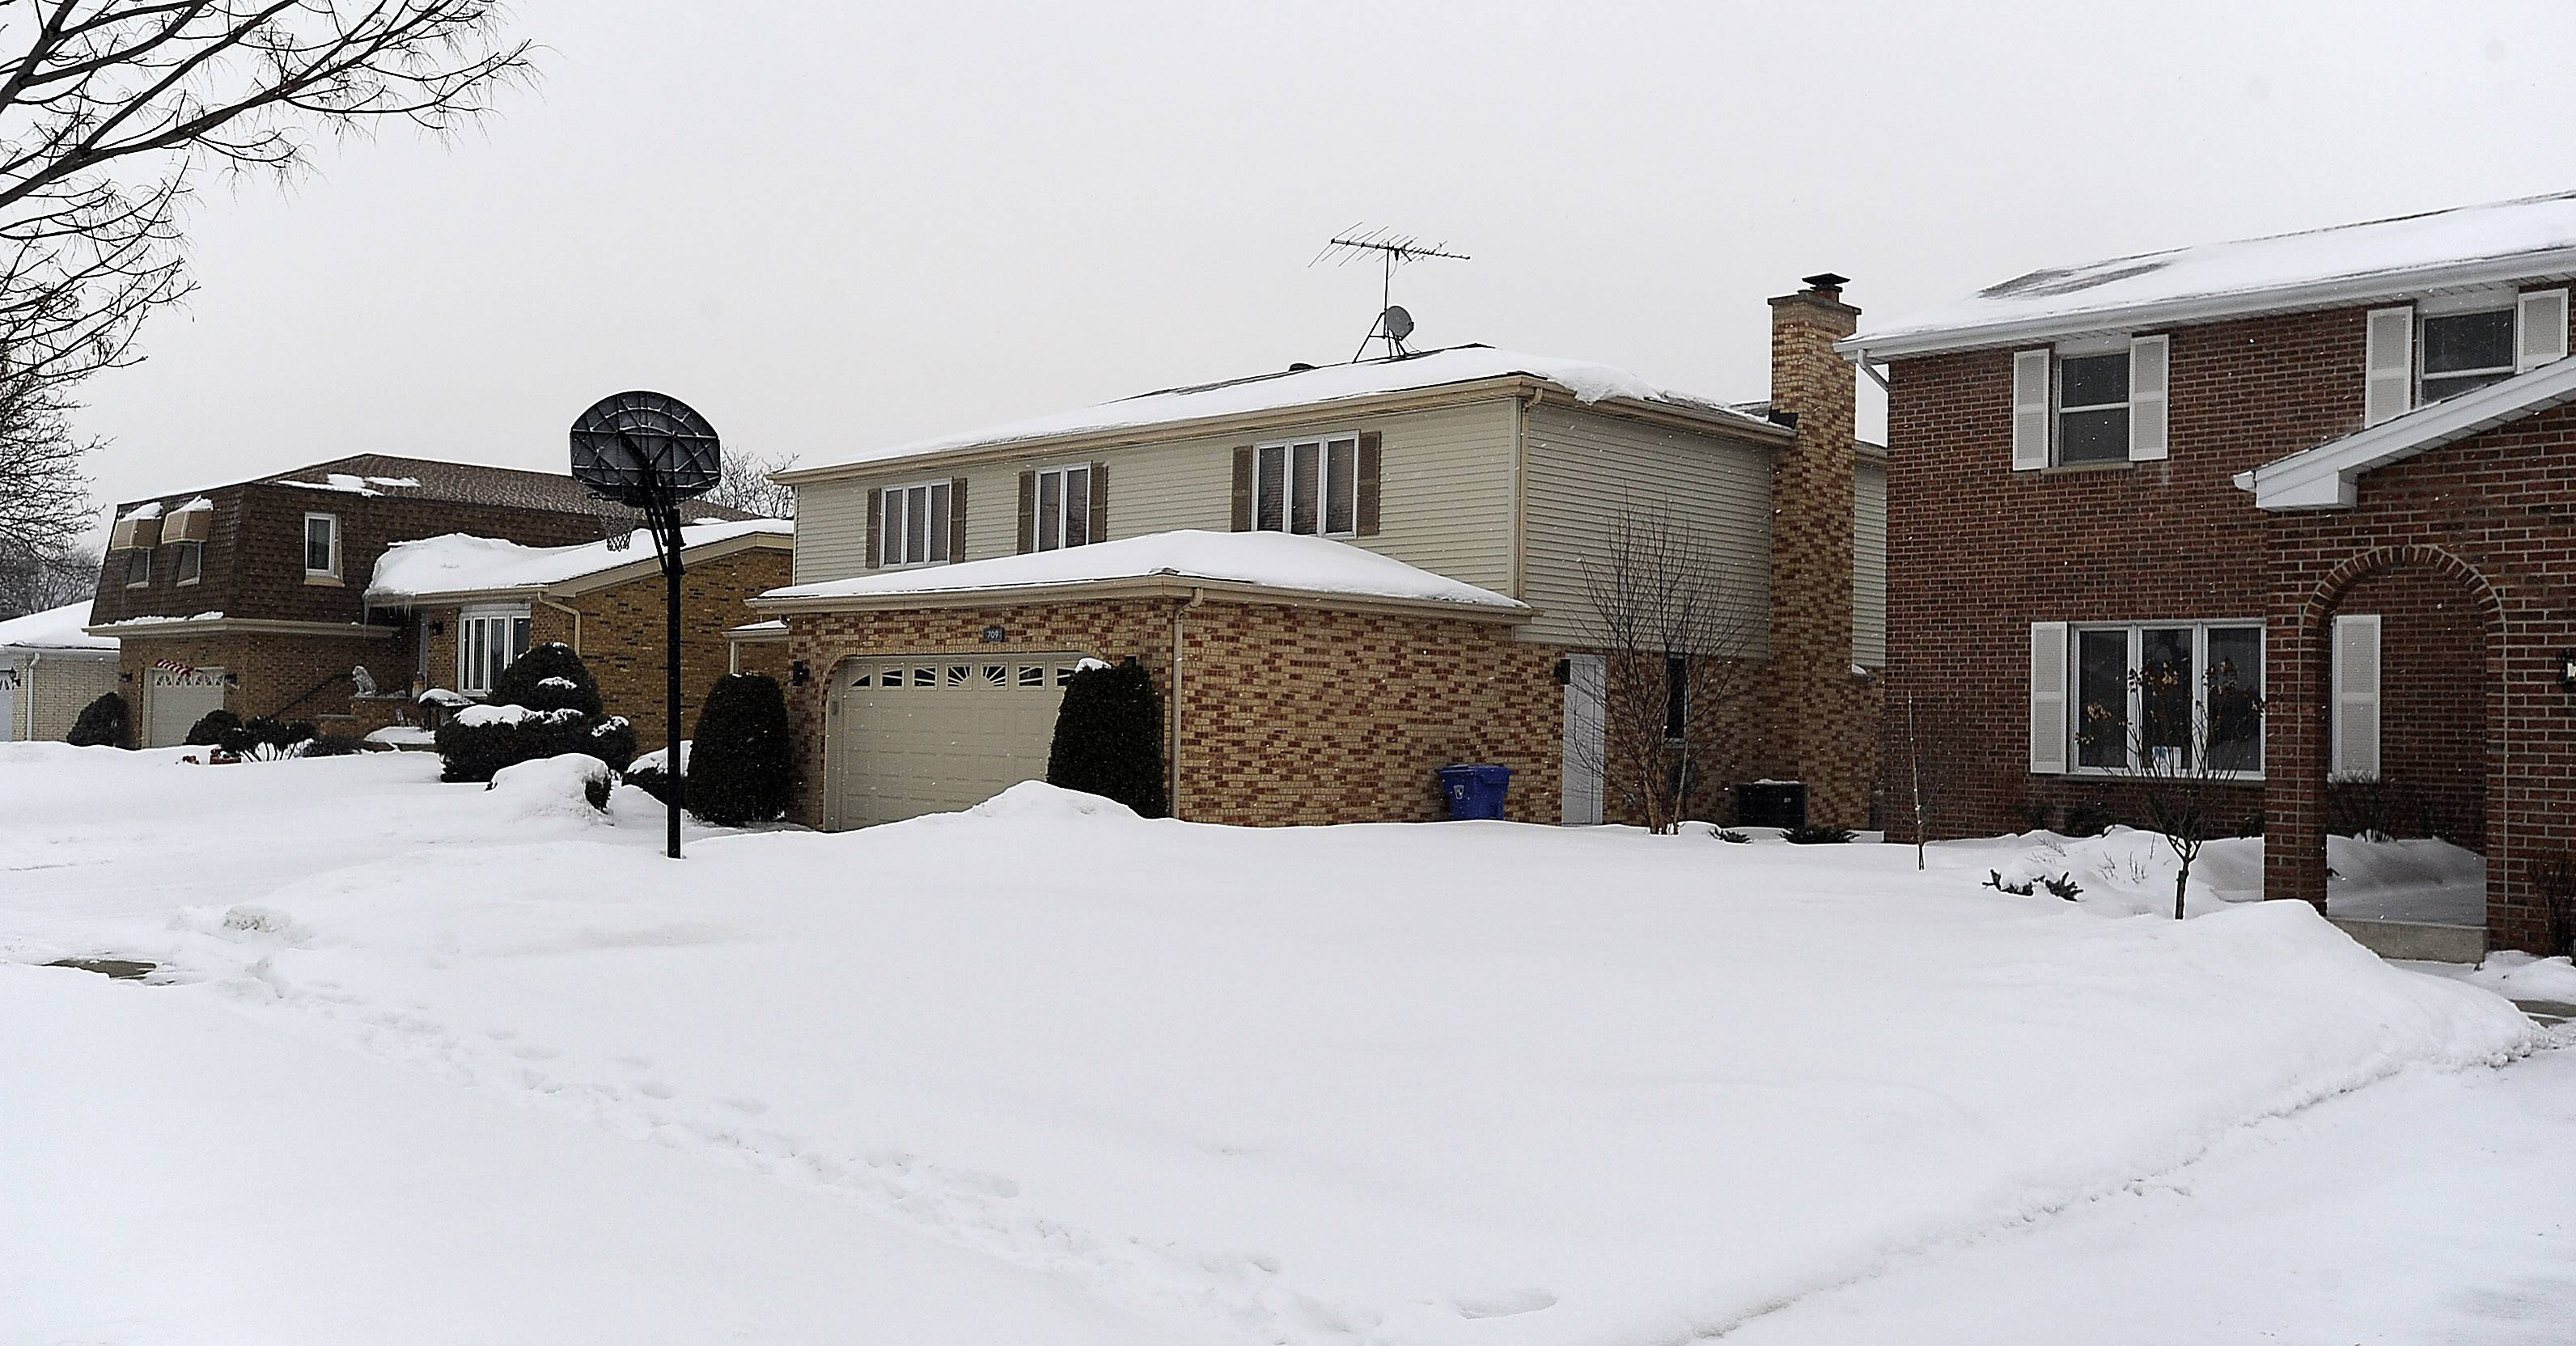 These houses along Noah Terrace are typical of those found in Mount Prospect's St. Cecilia neighborhood.